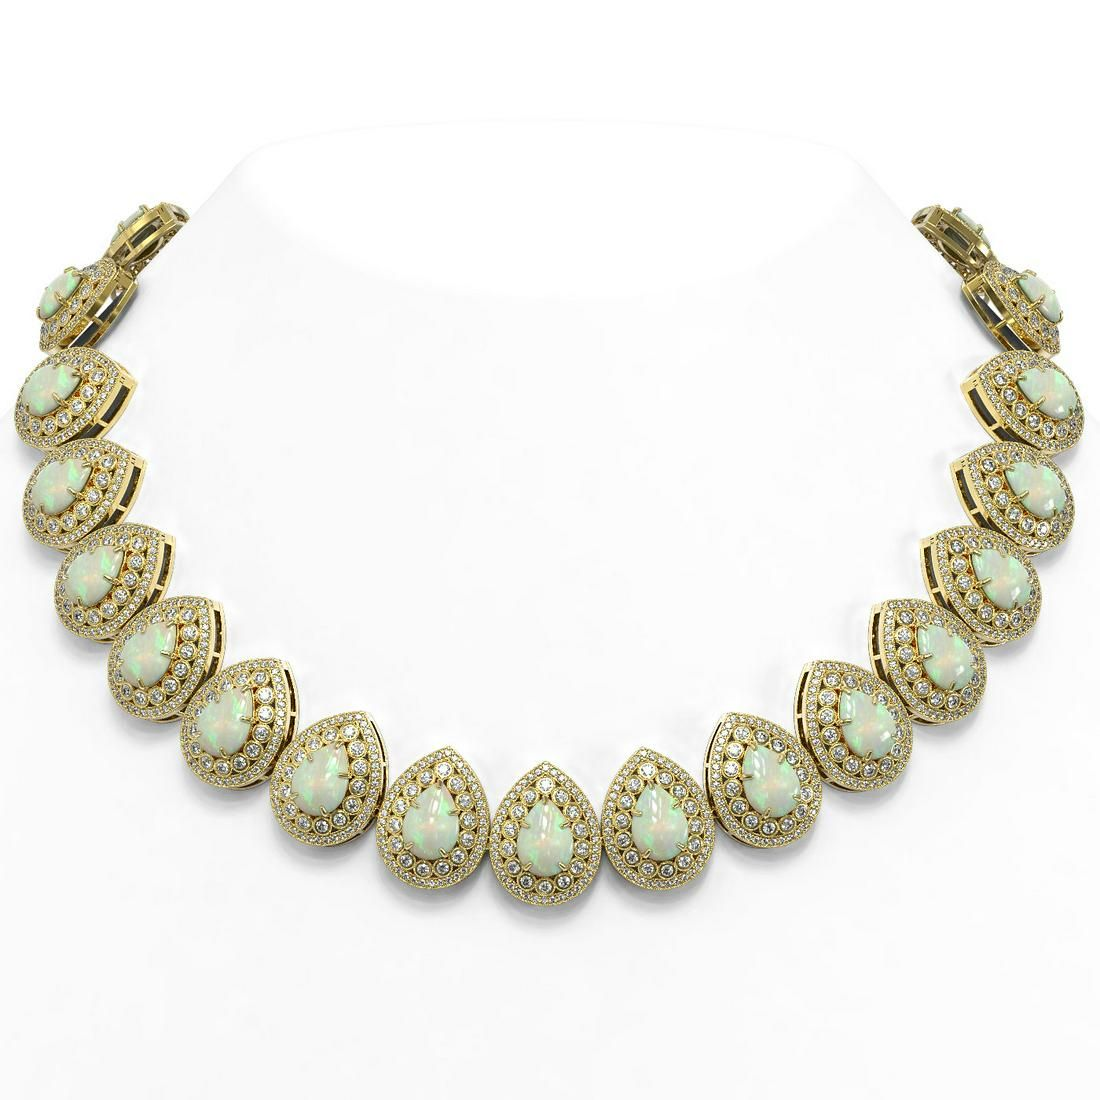 100.62 ctw Certified Opal & Diamond Victorian Necklace